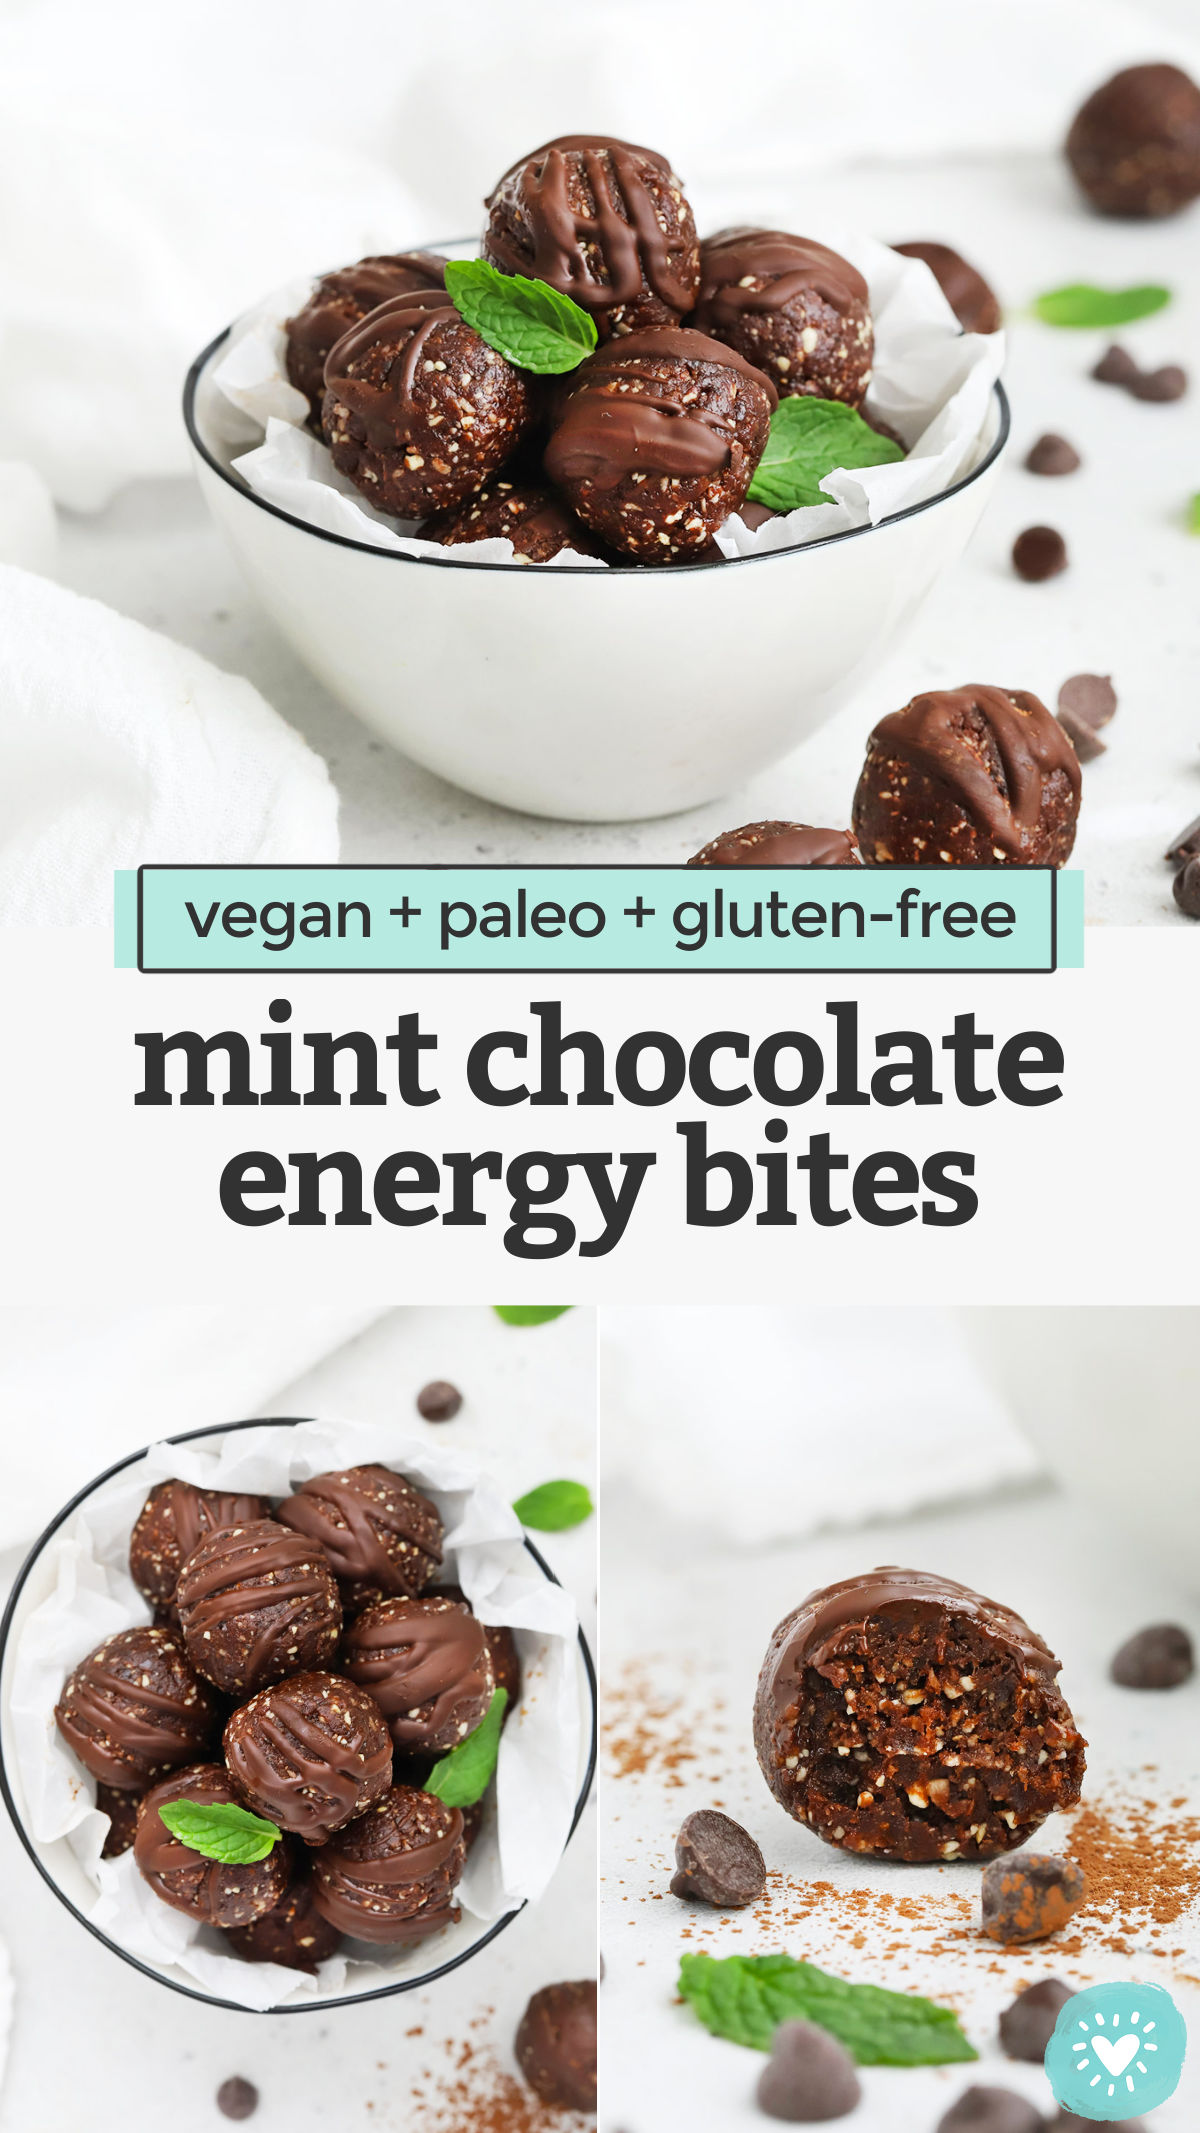 Thin Mint Energy Bites - These Mint Chocolate Energy Bites are a delicious snack or healthy treat! Made with simple ingredients, they're great for meal prep. (Vegan + Paleo + Gluten-Free) // Thin Mint Energy Bites // Mint Brownie Energy Bites // Chocolate Peppermint Energy Bites // Healthy Snack // Meal Prep Snack // Mint Chocolate Energy Balls #vegan #glutenfree #paleo #energybites #energyballs